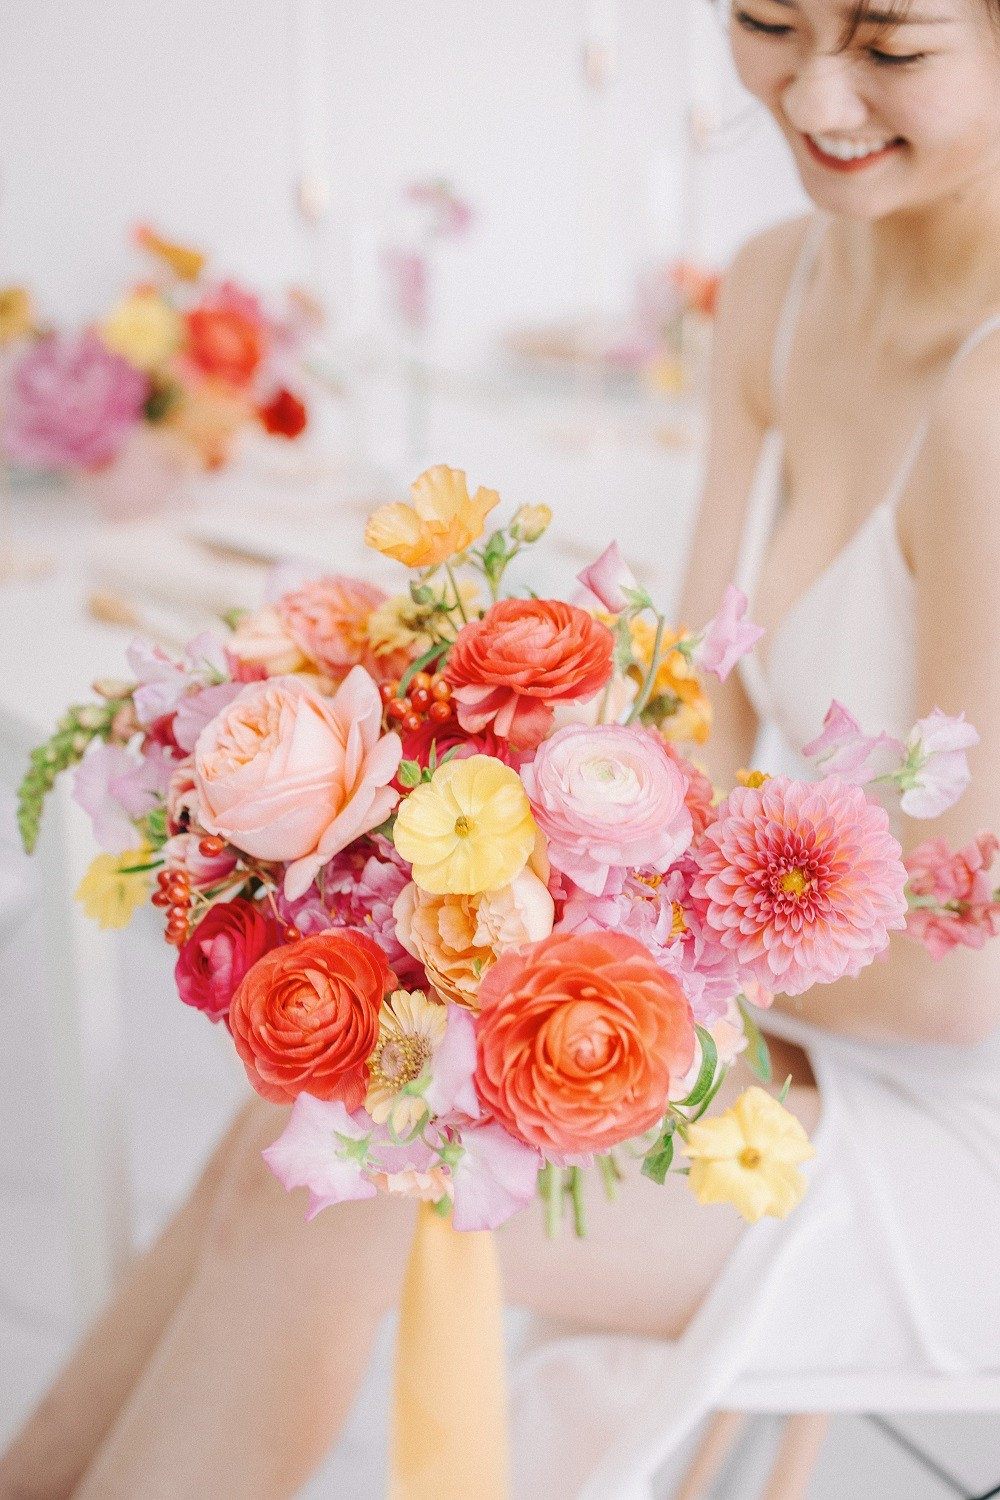 8 Bouquets for a Summer Wedding